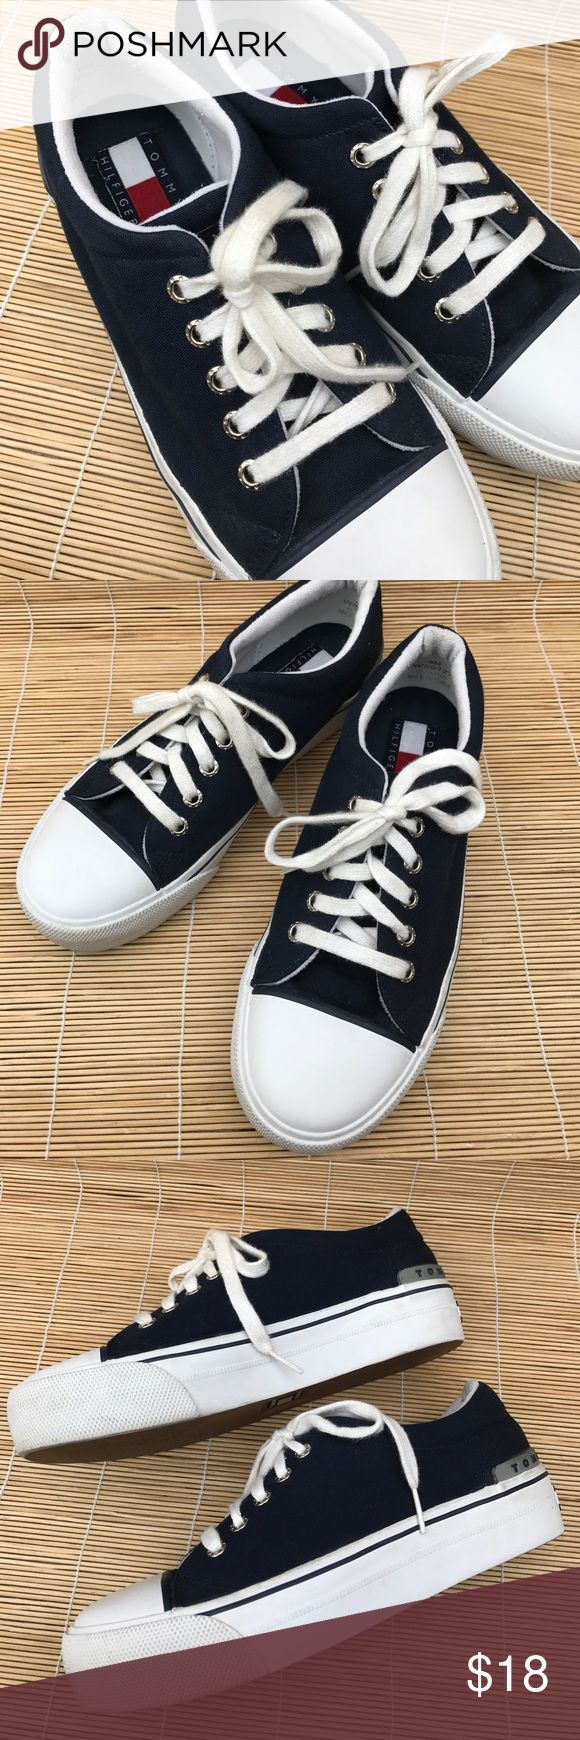 """Tommy Hilfiger Tennies size 8 Woman's TH Tennies. (They are an 8 and fit me - I am an 8). They are in good shape and have been pre loved! 1-1/2"""" heel. Tommy Hilfiger Shoes Sneakers"""